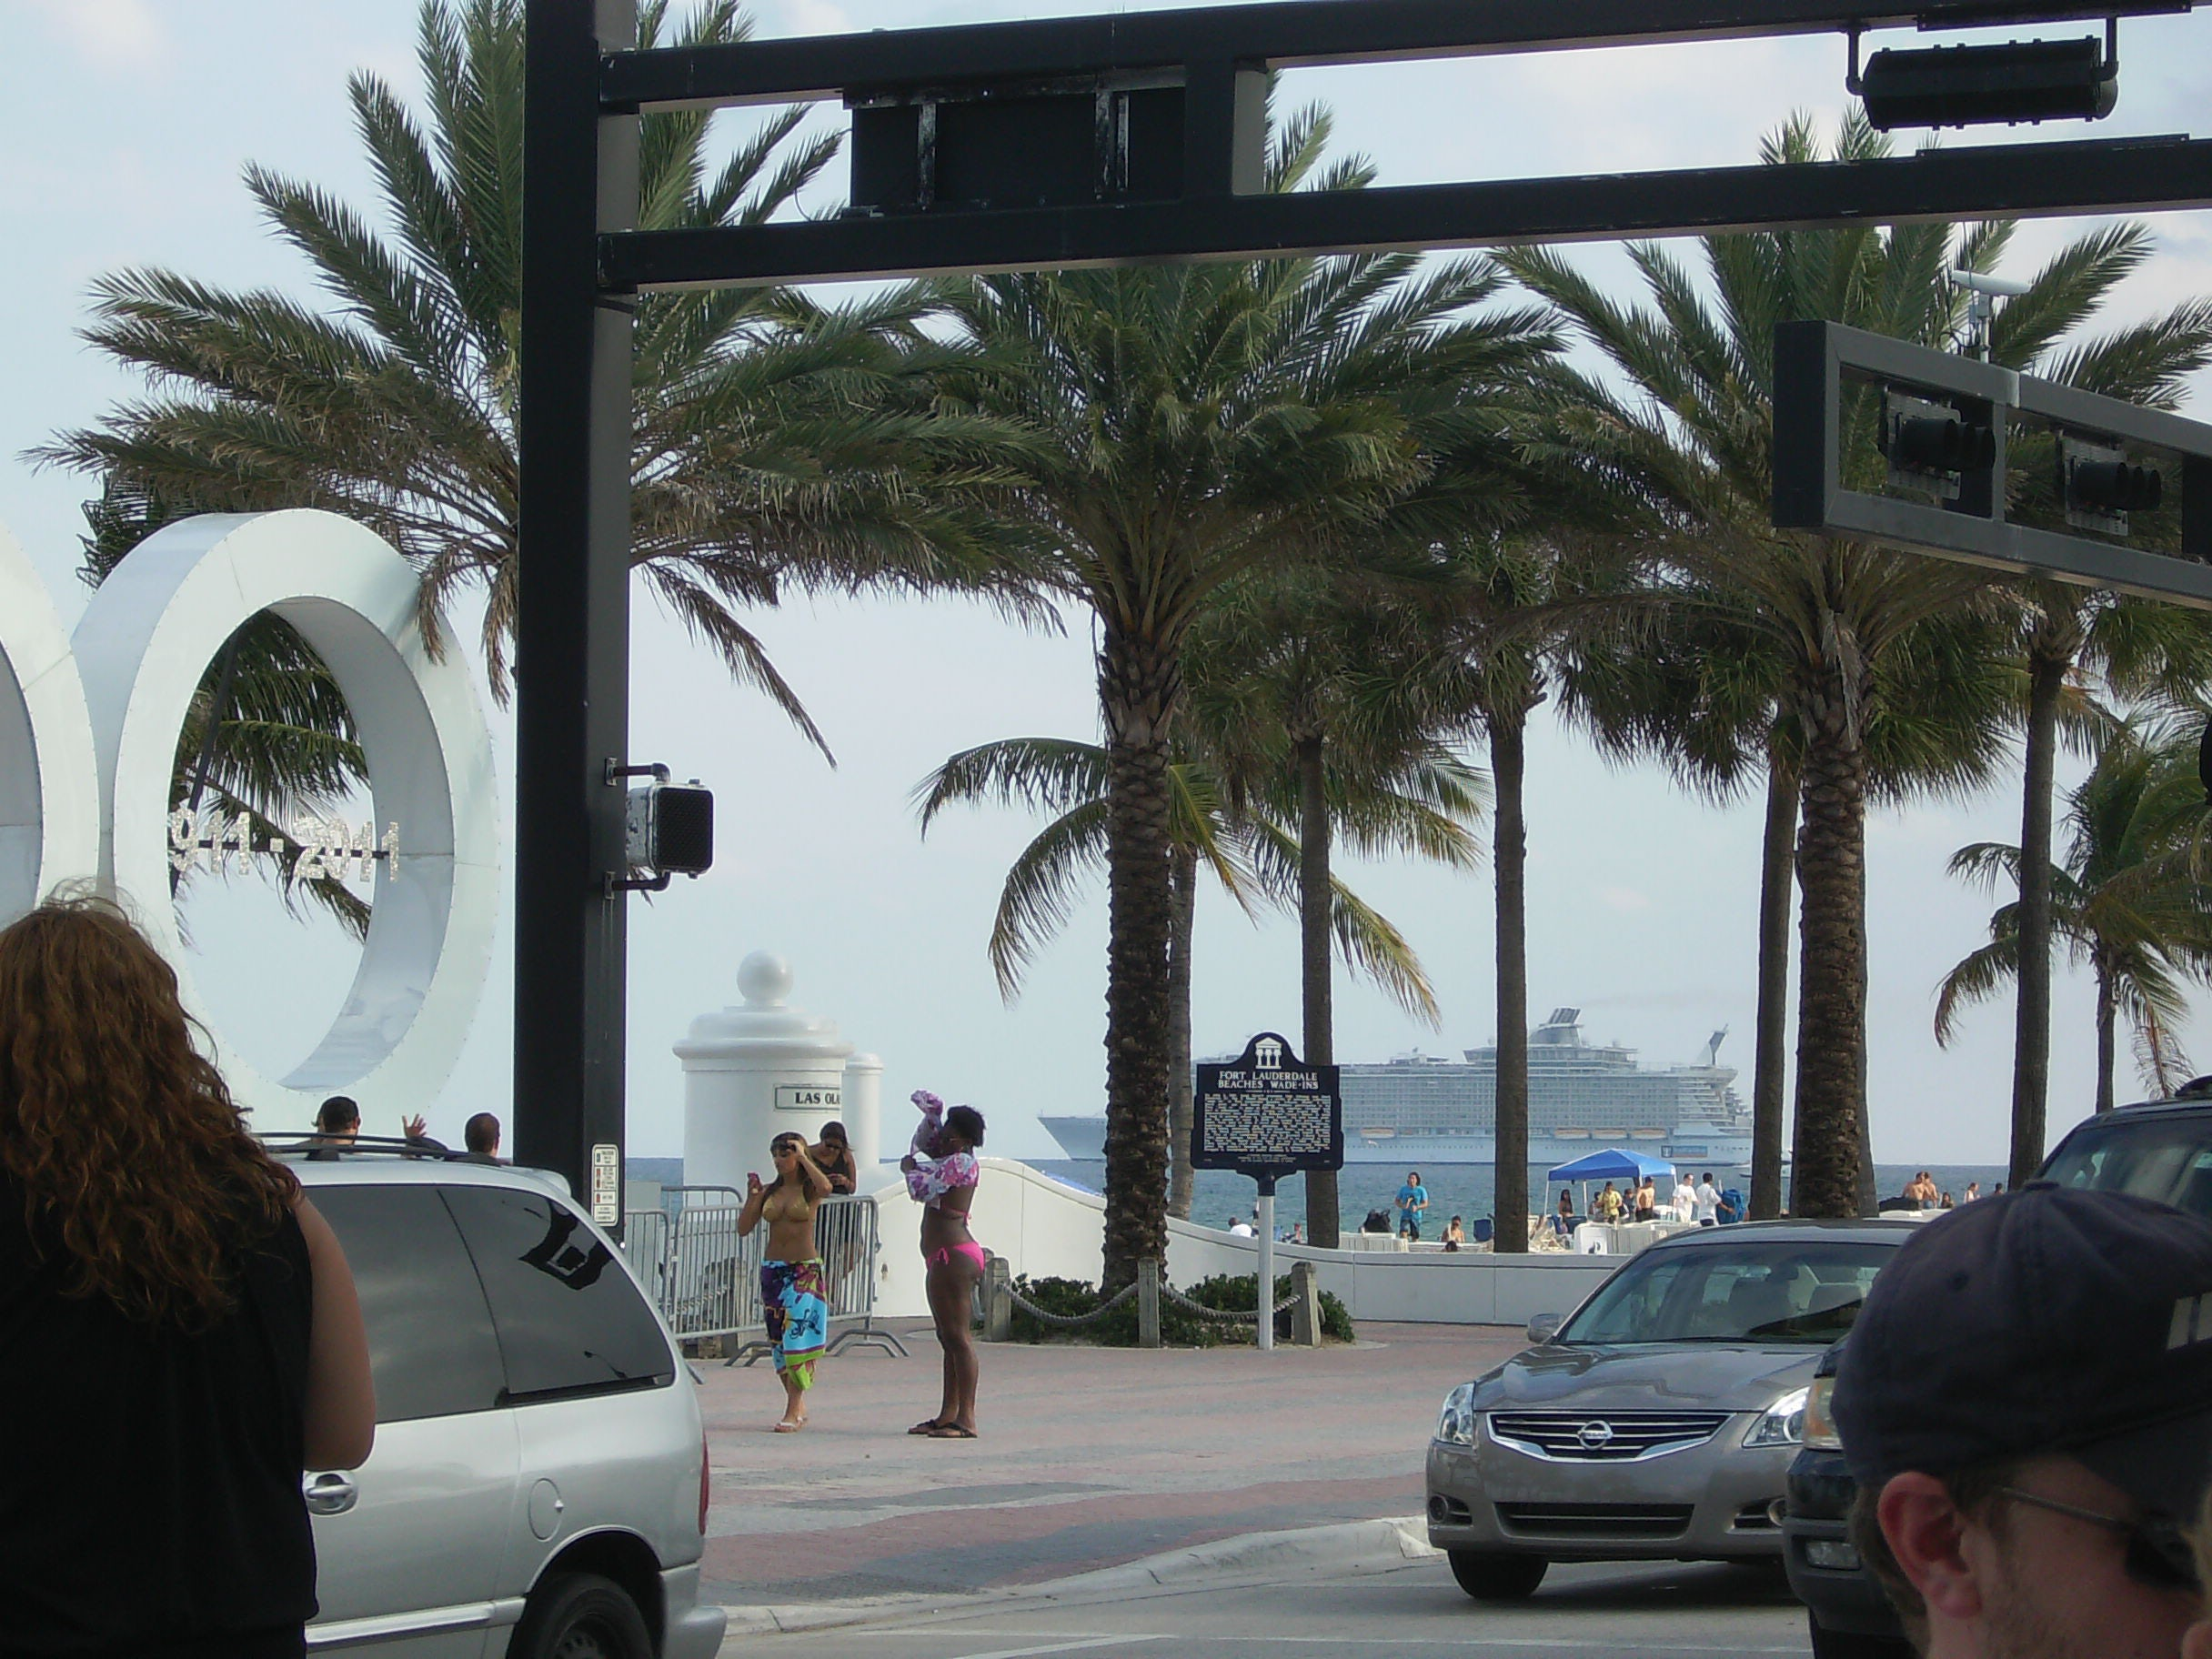 Ft. Lauderdale is a great starting off point for cruising!